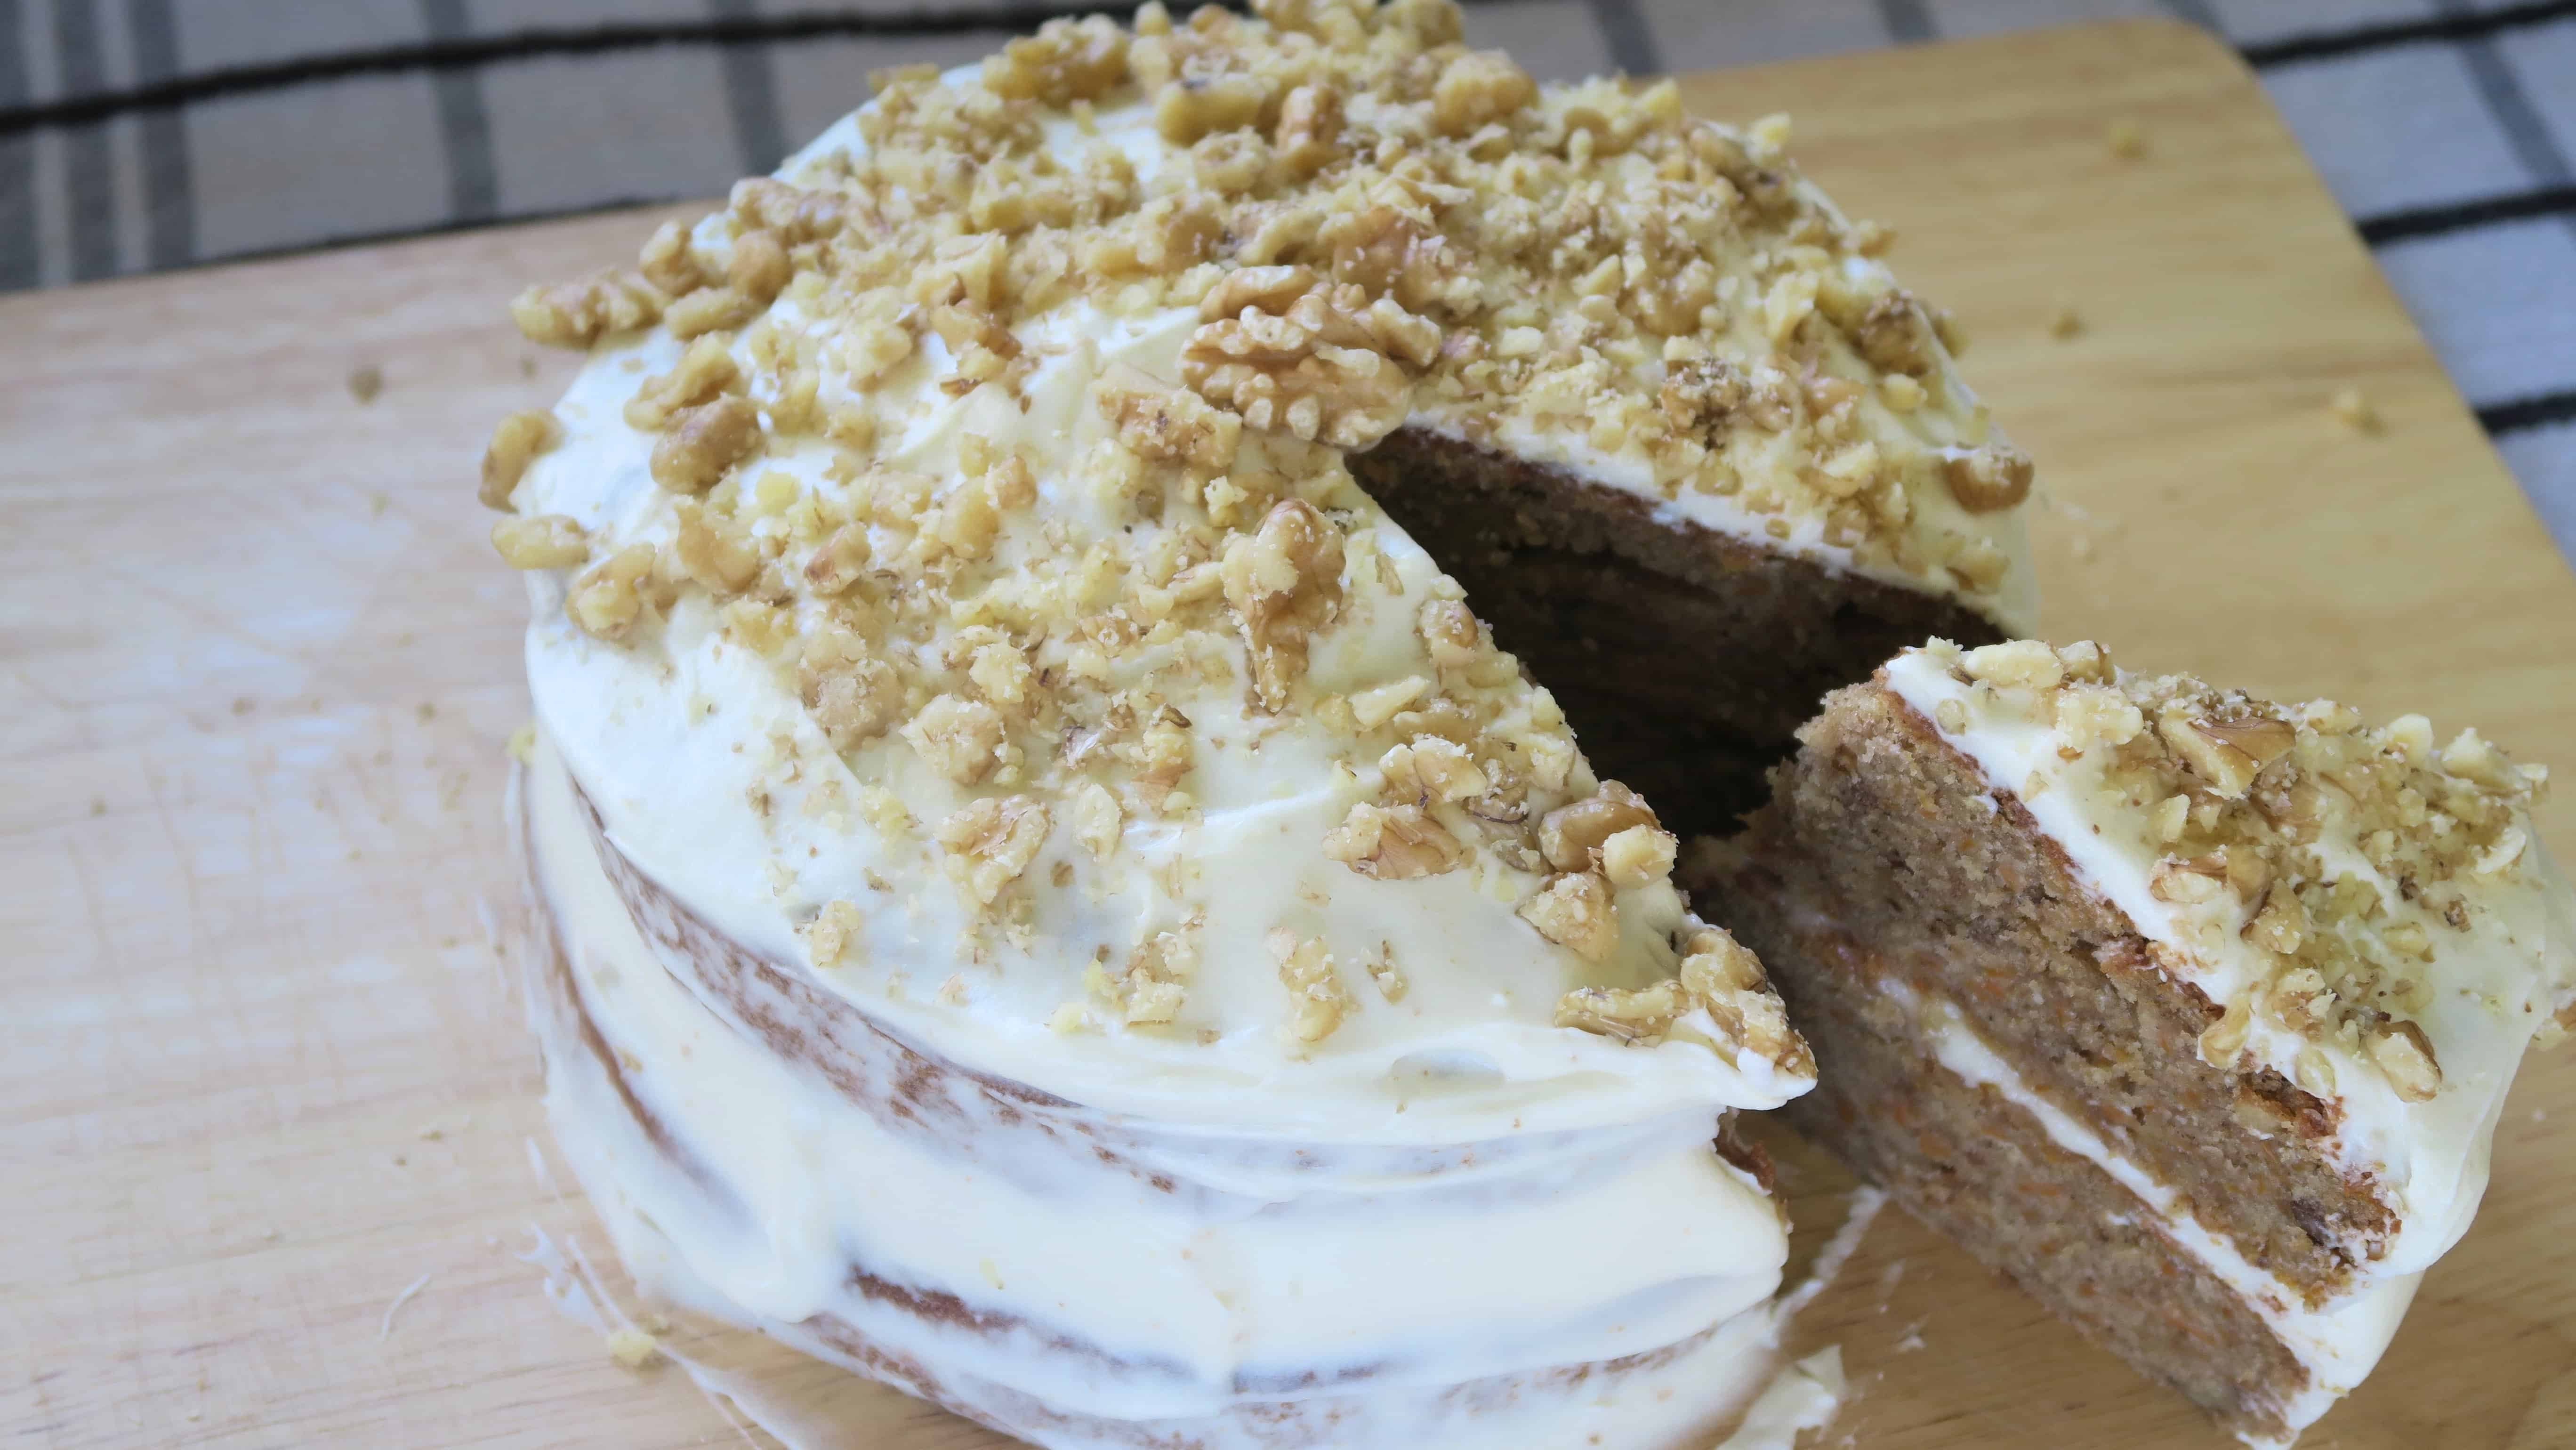 Cake Recipes Dairy Free: Gluten Free Carrot Cake With Dairy Free Cream Cheese